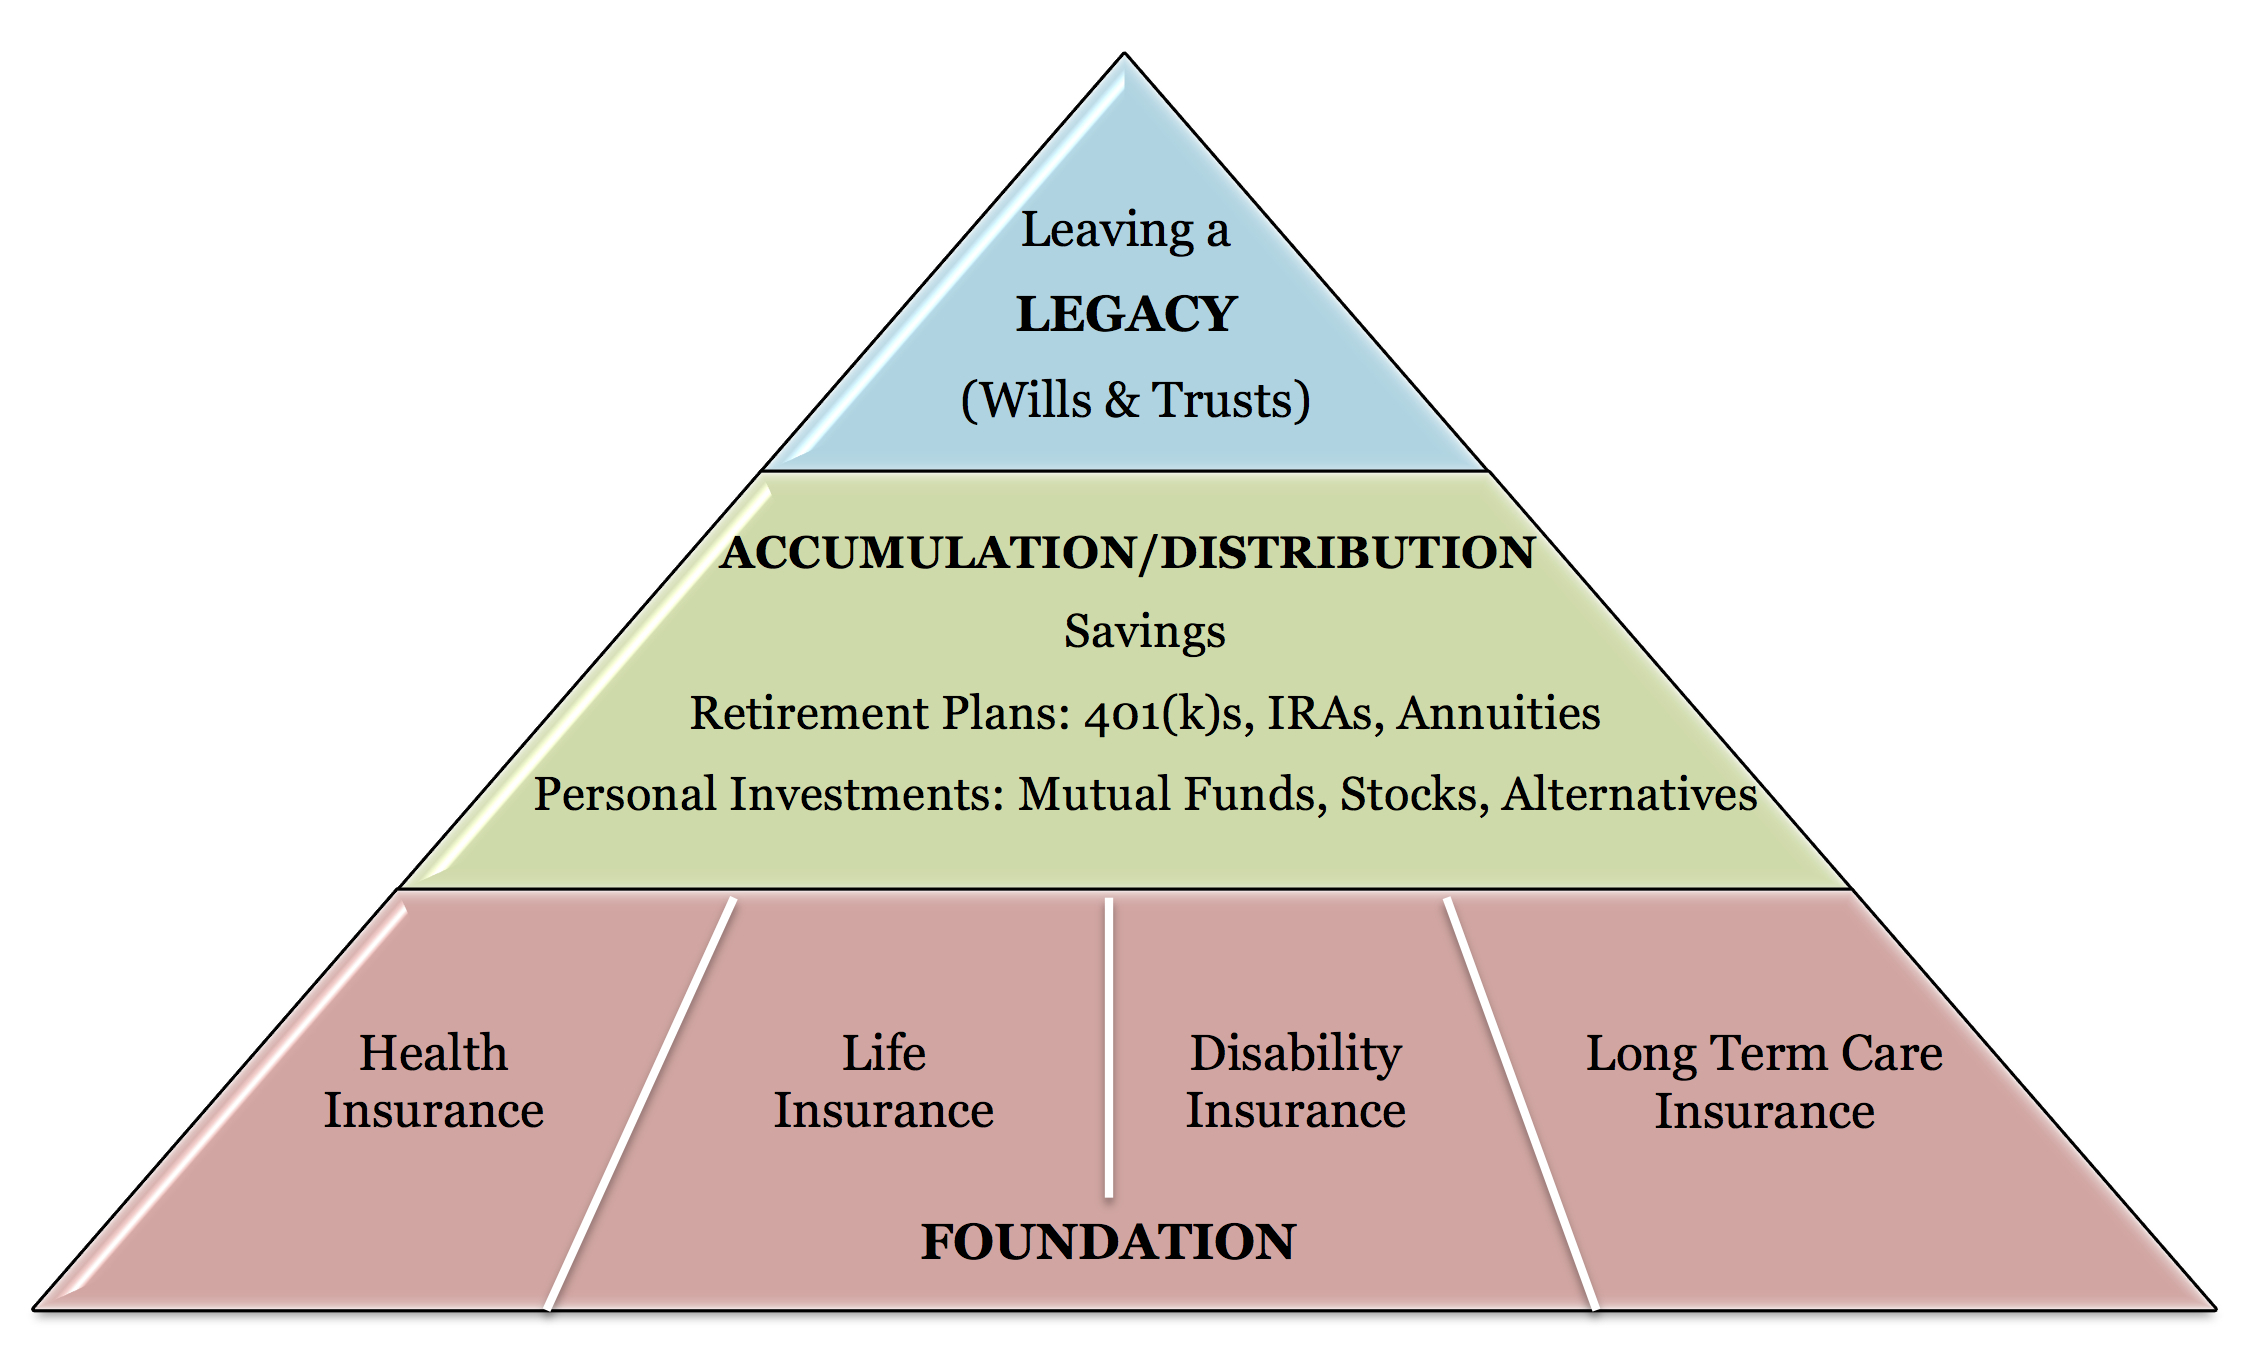 Financial Foundation Pyramid